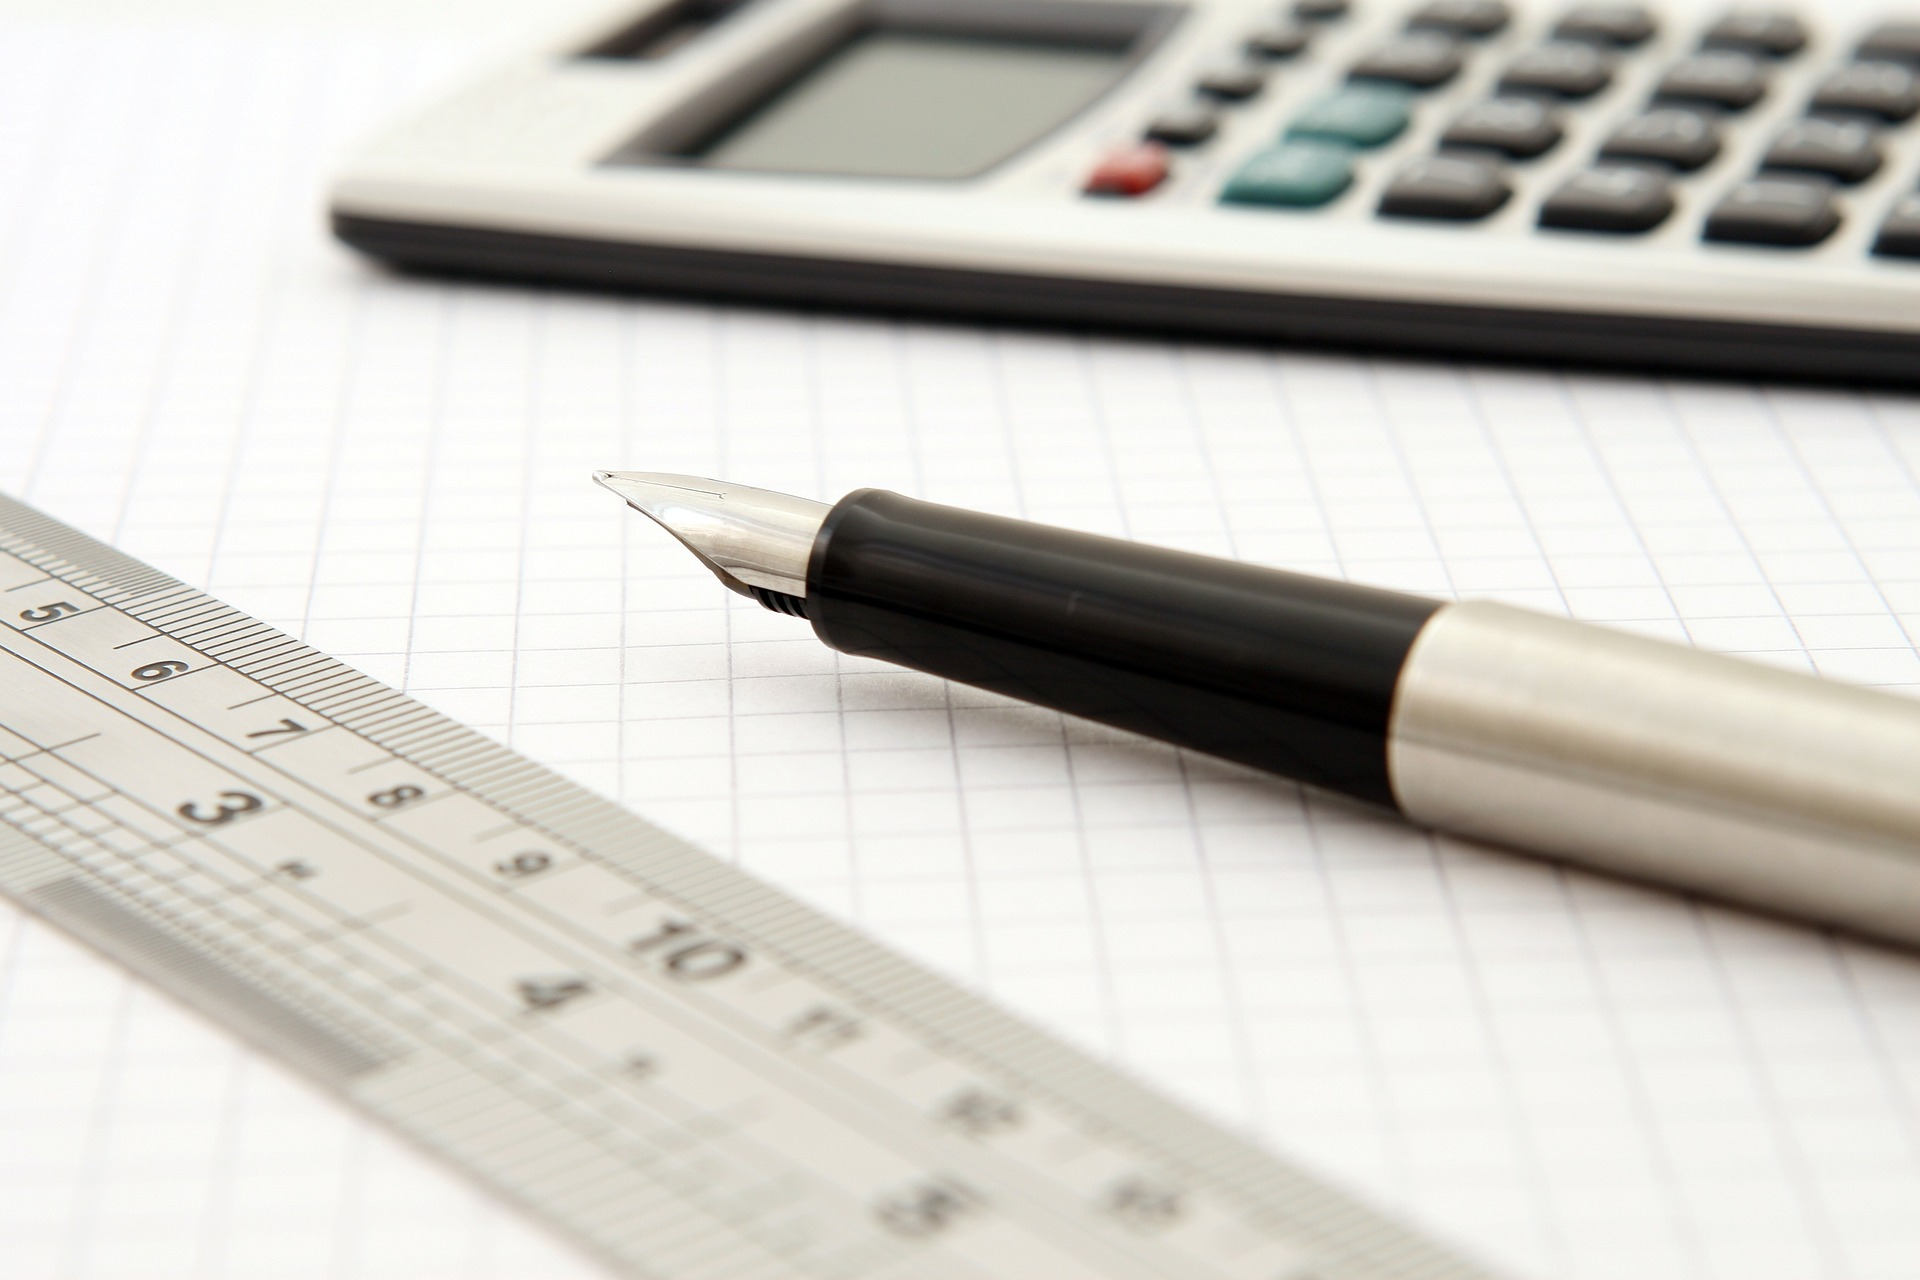 A calculator, a fountain pen, and a ruler on graph paper